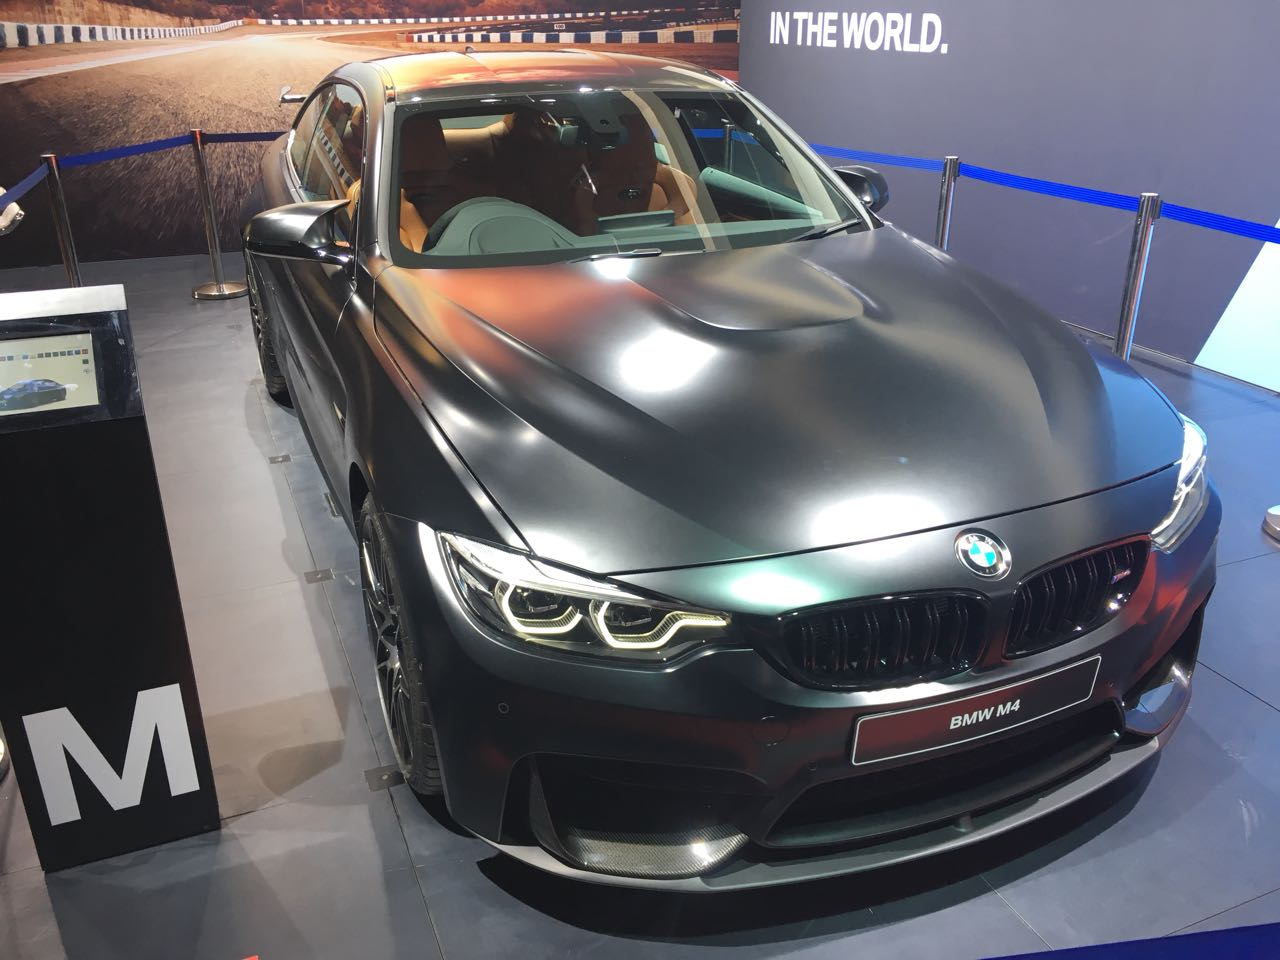 <p>BMW India just revealed the BMW M4 Coupe at Rs 1.35 Cr 4 litre inline 6 | 450hp | 550 Nm | 0-100 in 4 secs. Available to book. </p>